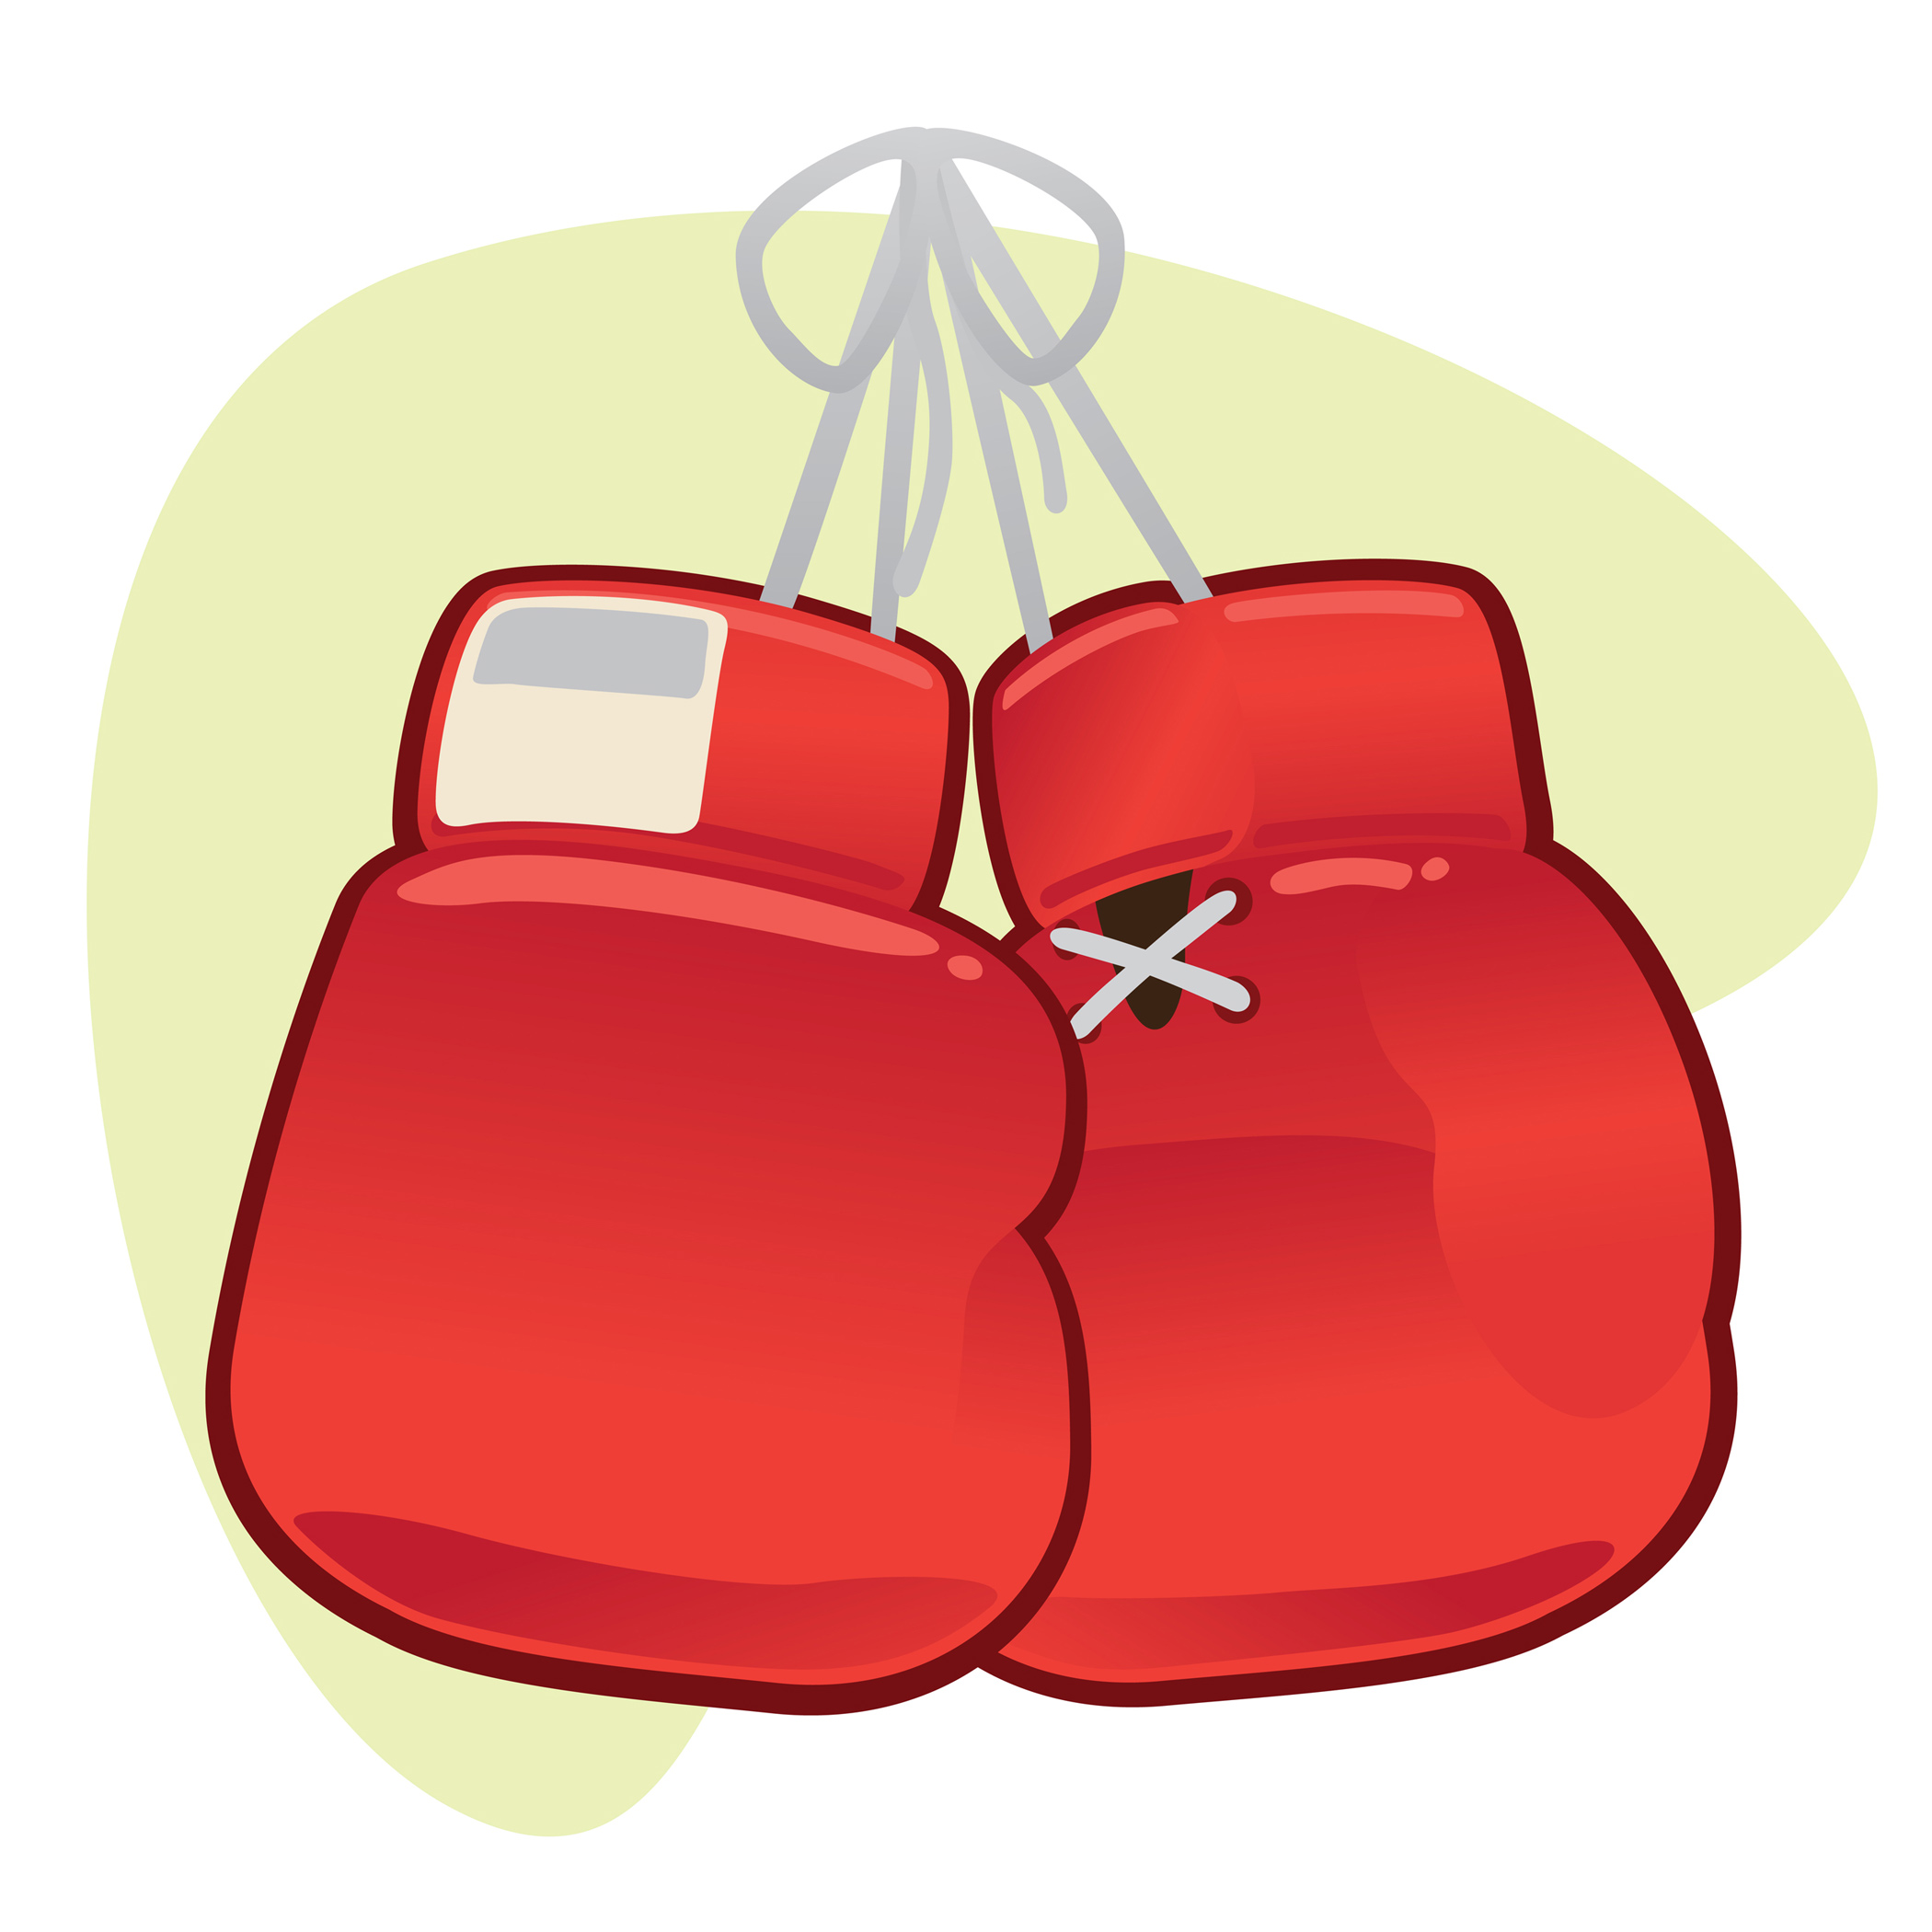 Boxing Glove Images - Clipart .